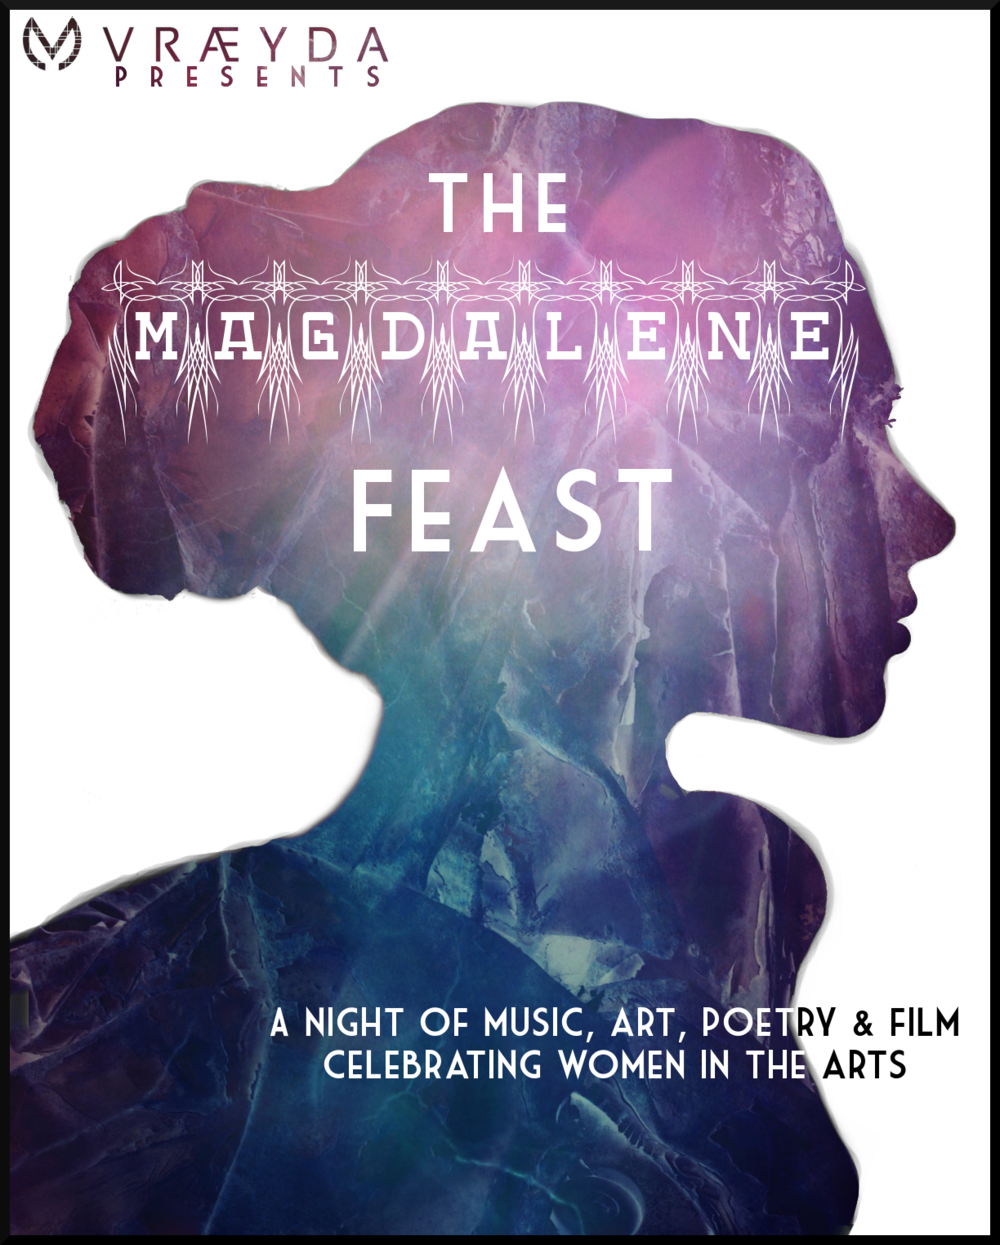 - The Magdalene Feast was a celebration of reclamation for the image of the Magdalene. Neither whore, nor secret wife, she was an Apostle of her own right, trusted and valued for her intelligence and spiritual power. Featuring artists, authors & film, it rocked the Lower Mainland.  Help us bring it back! We want to celebrate women in the arts, and kick some serious ass doing it.